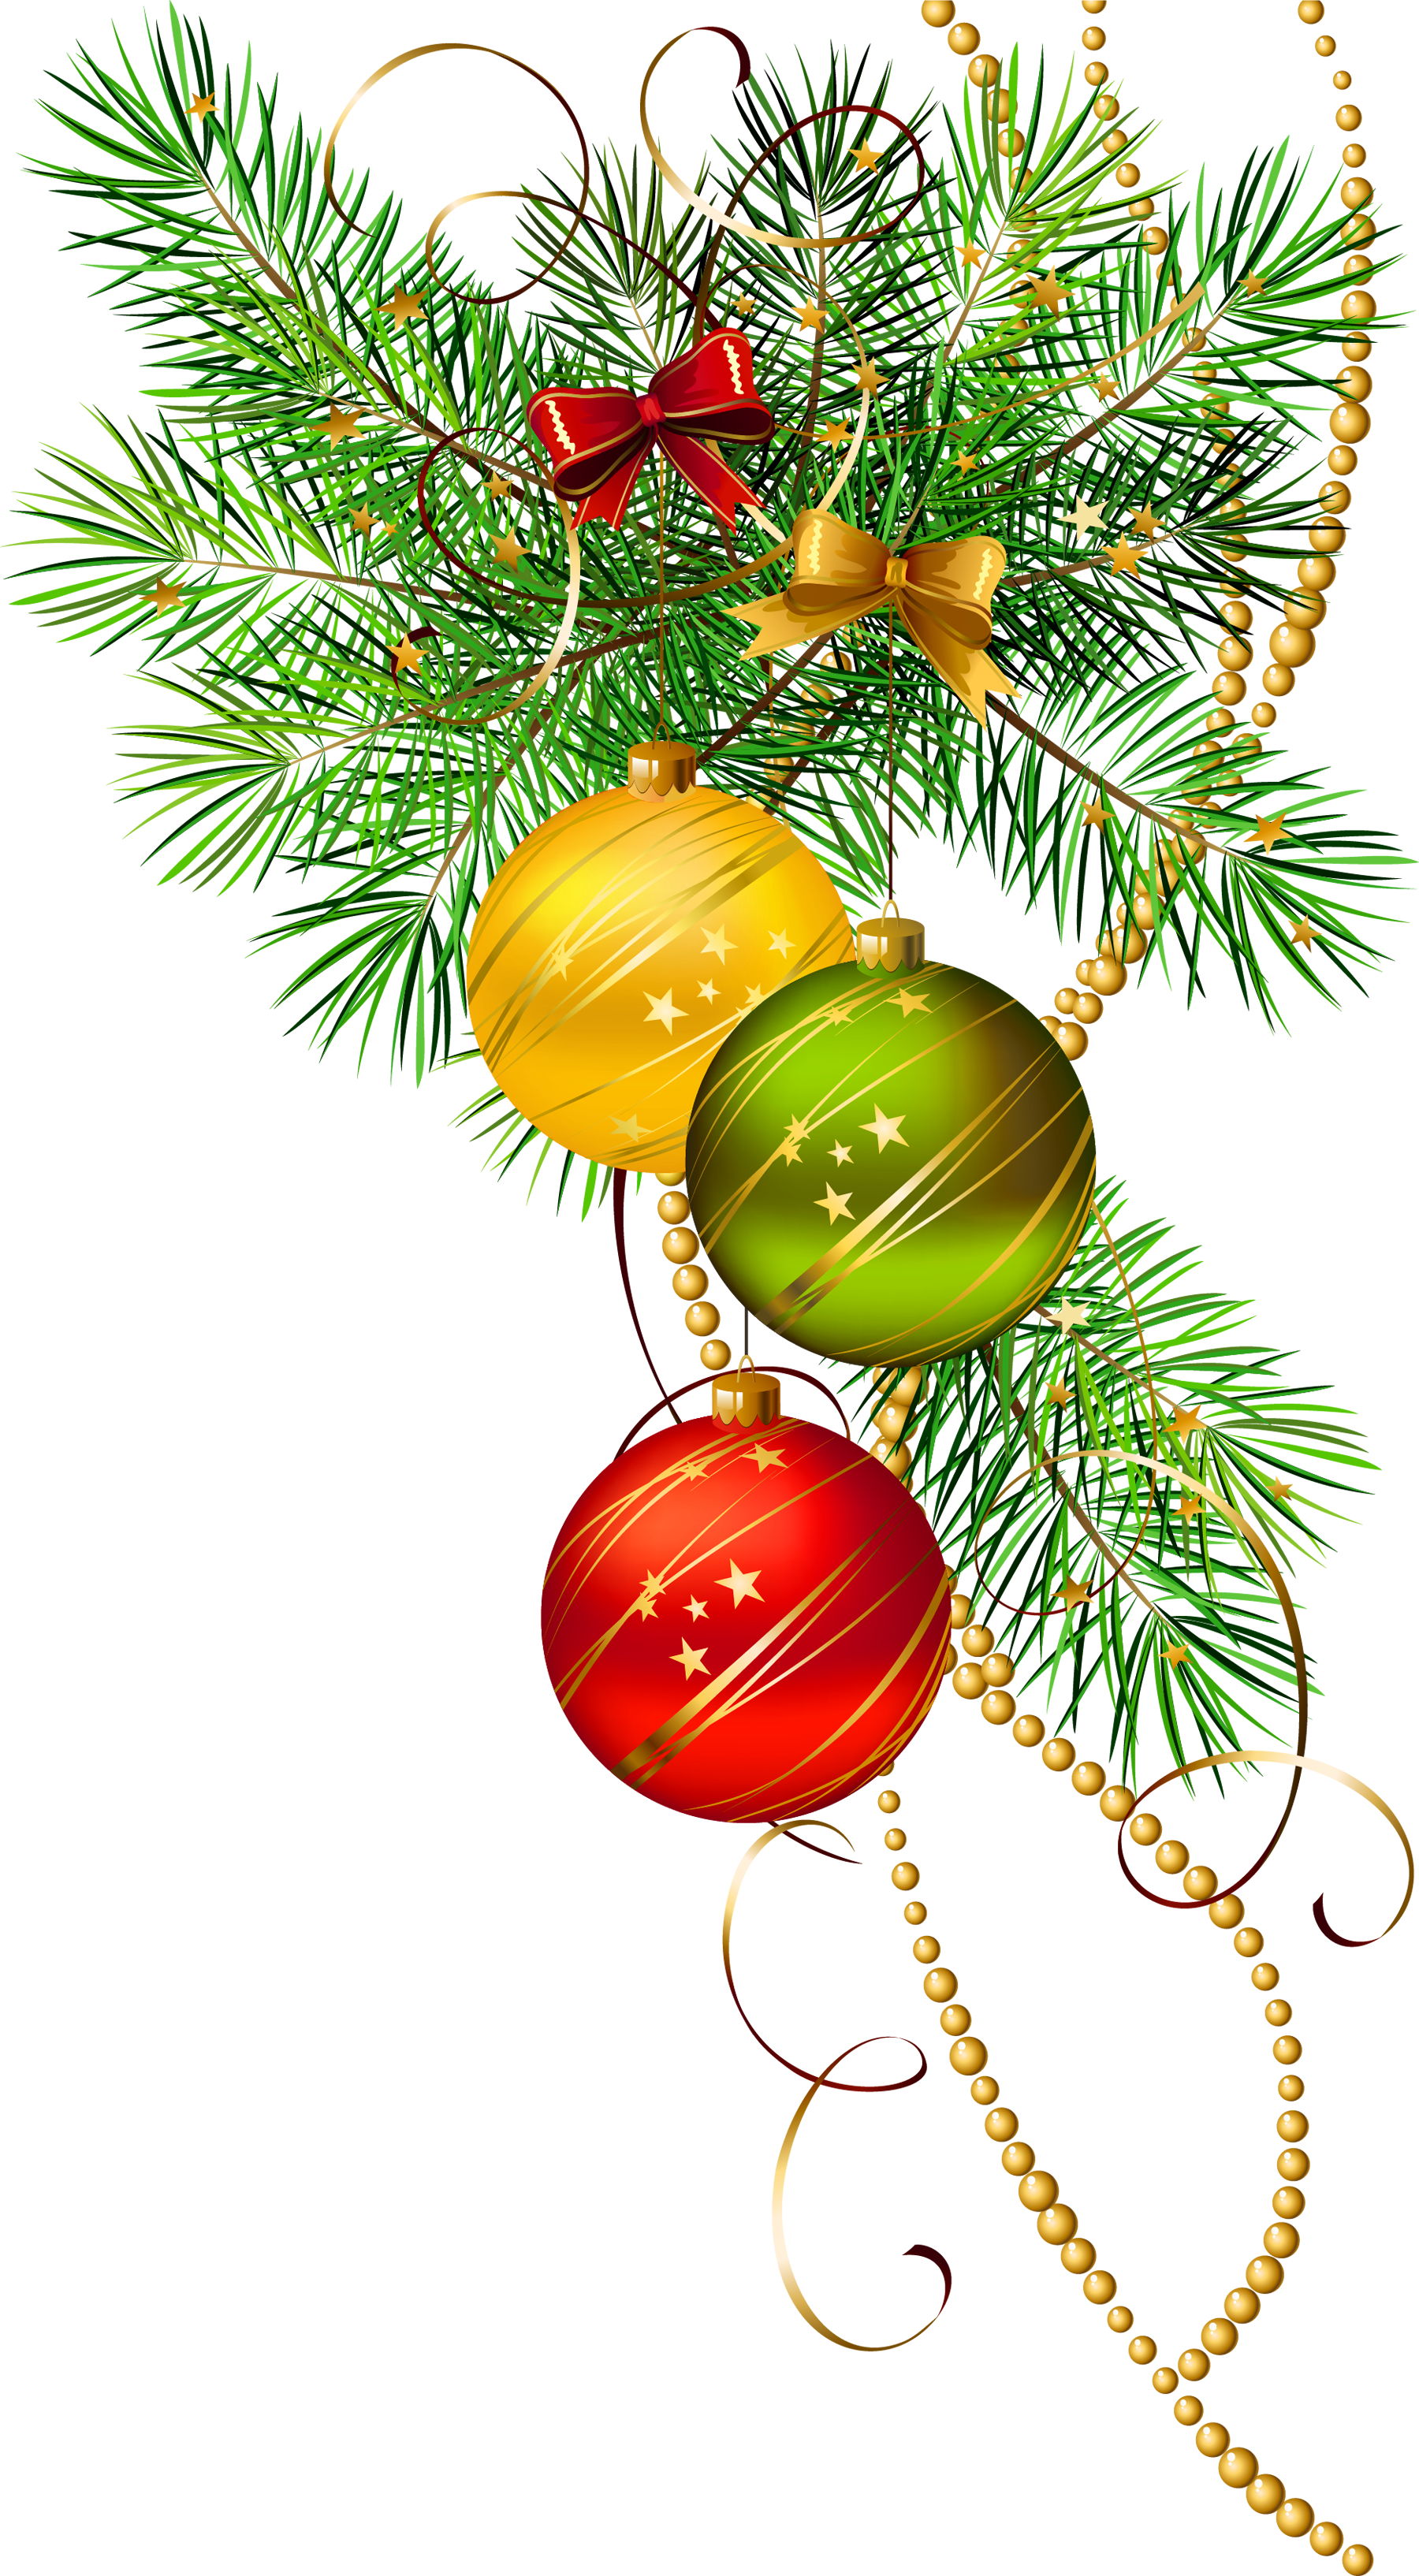 Transparent pine clipart - Branch Holiday - Christmas Decor Vector Png